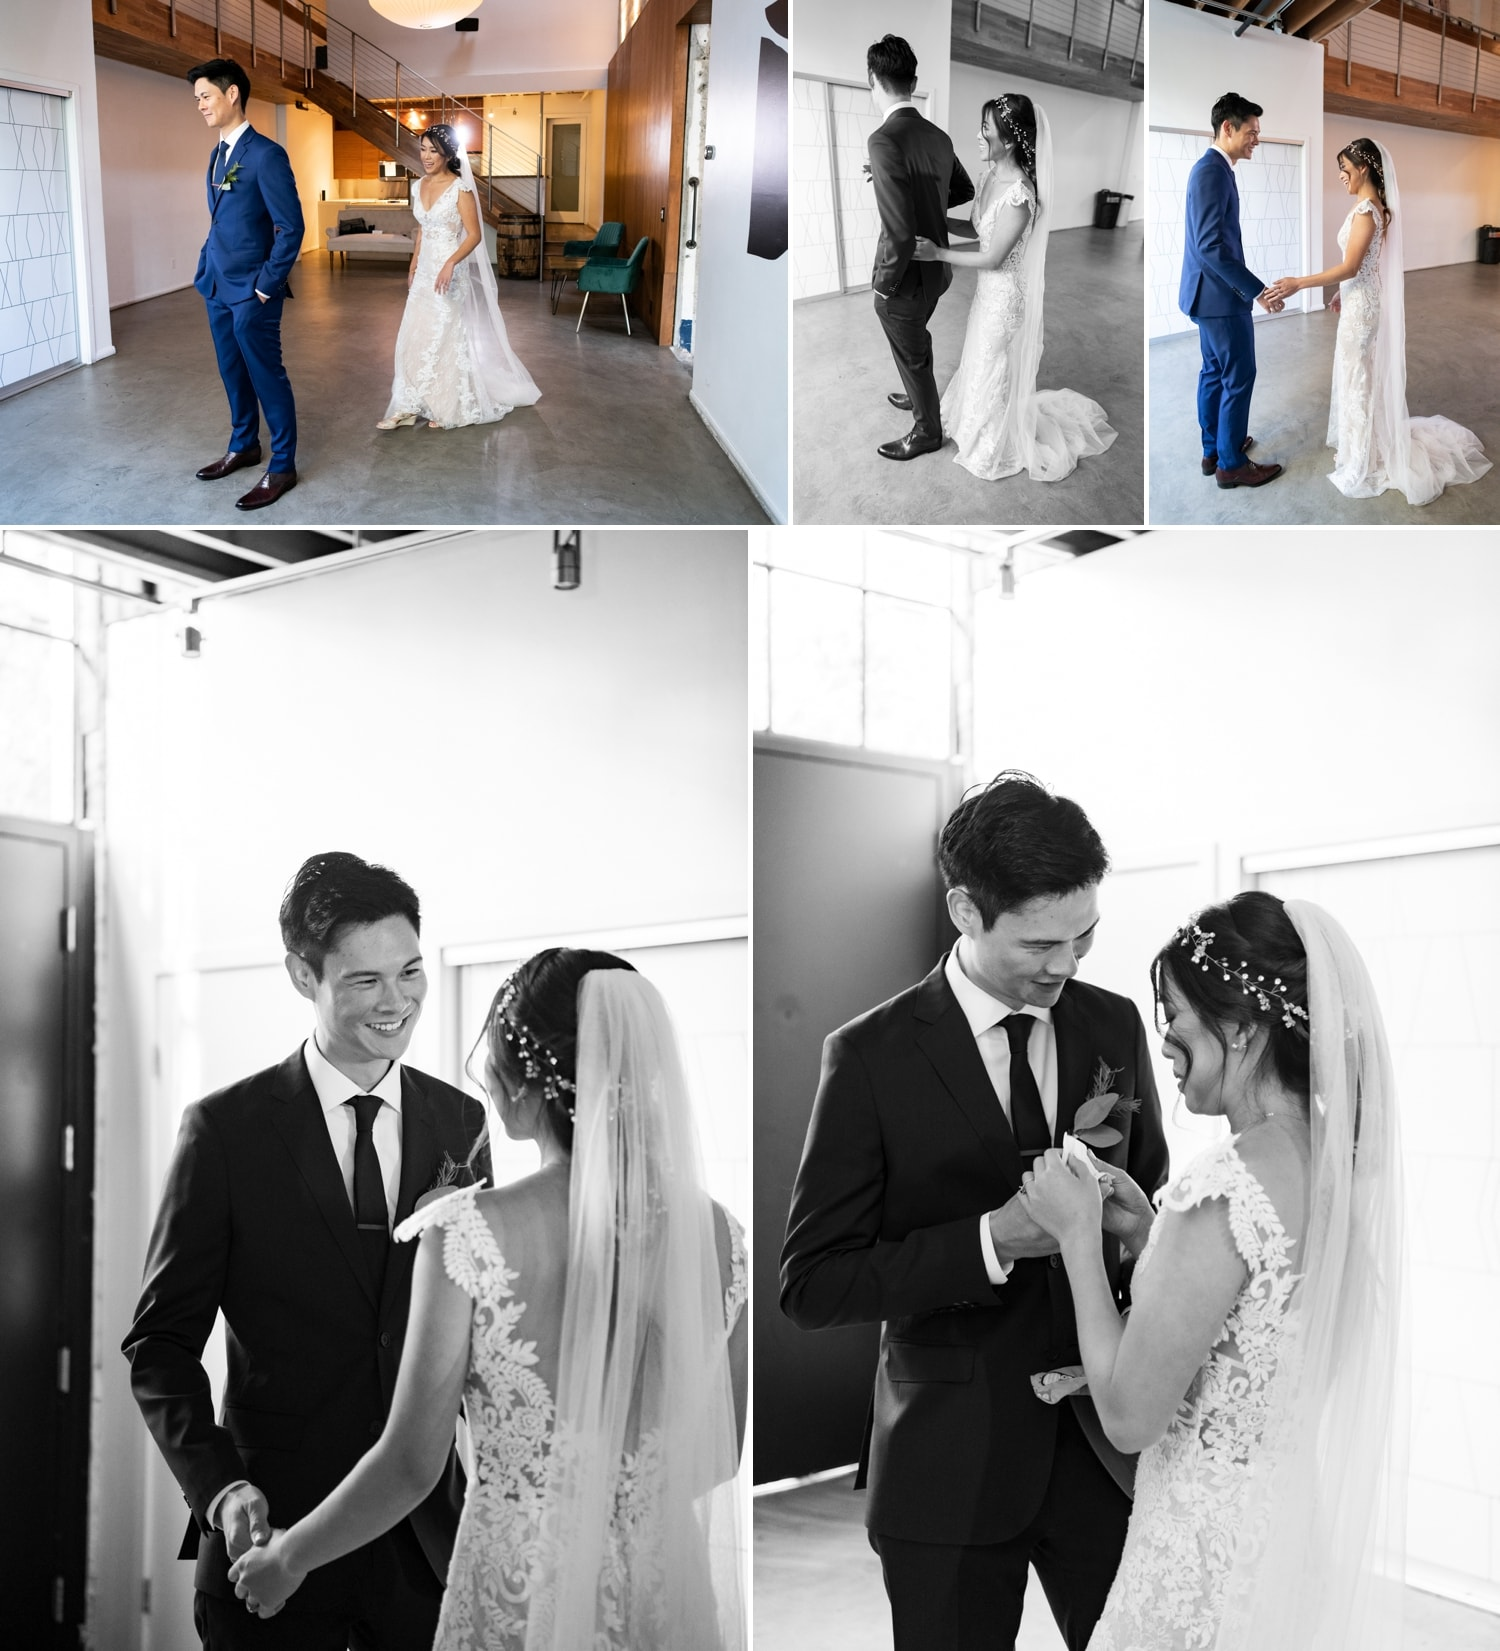 First look between bride and groom at Luce Loft in San Diego, CA.